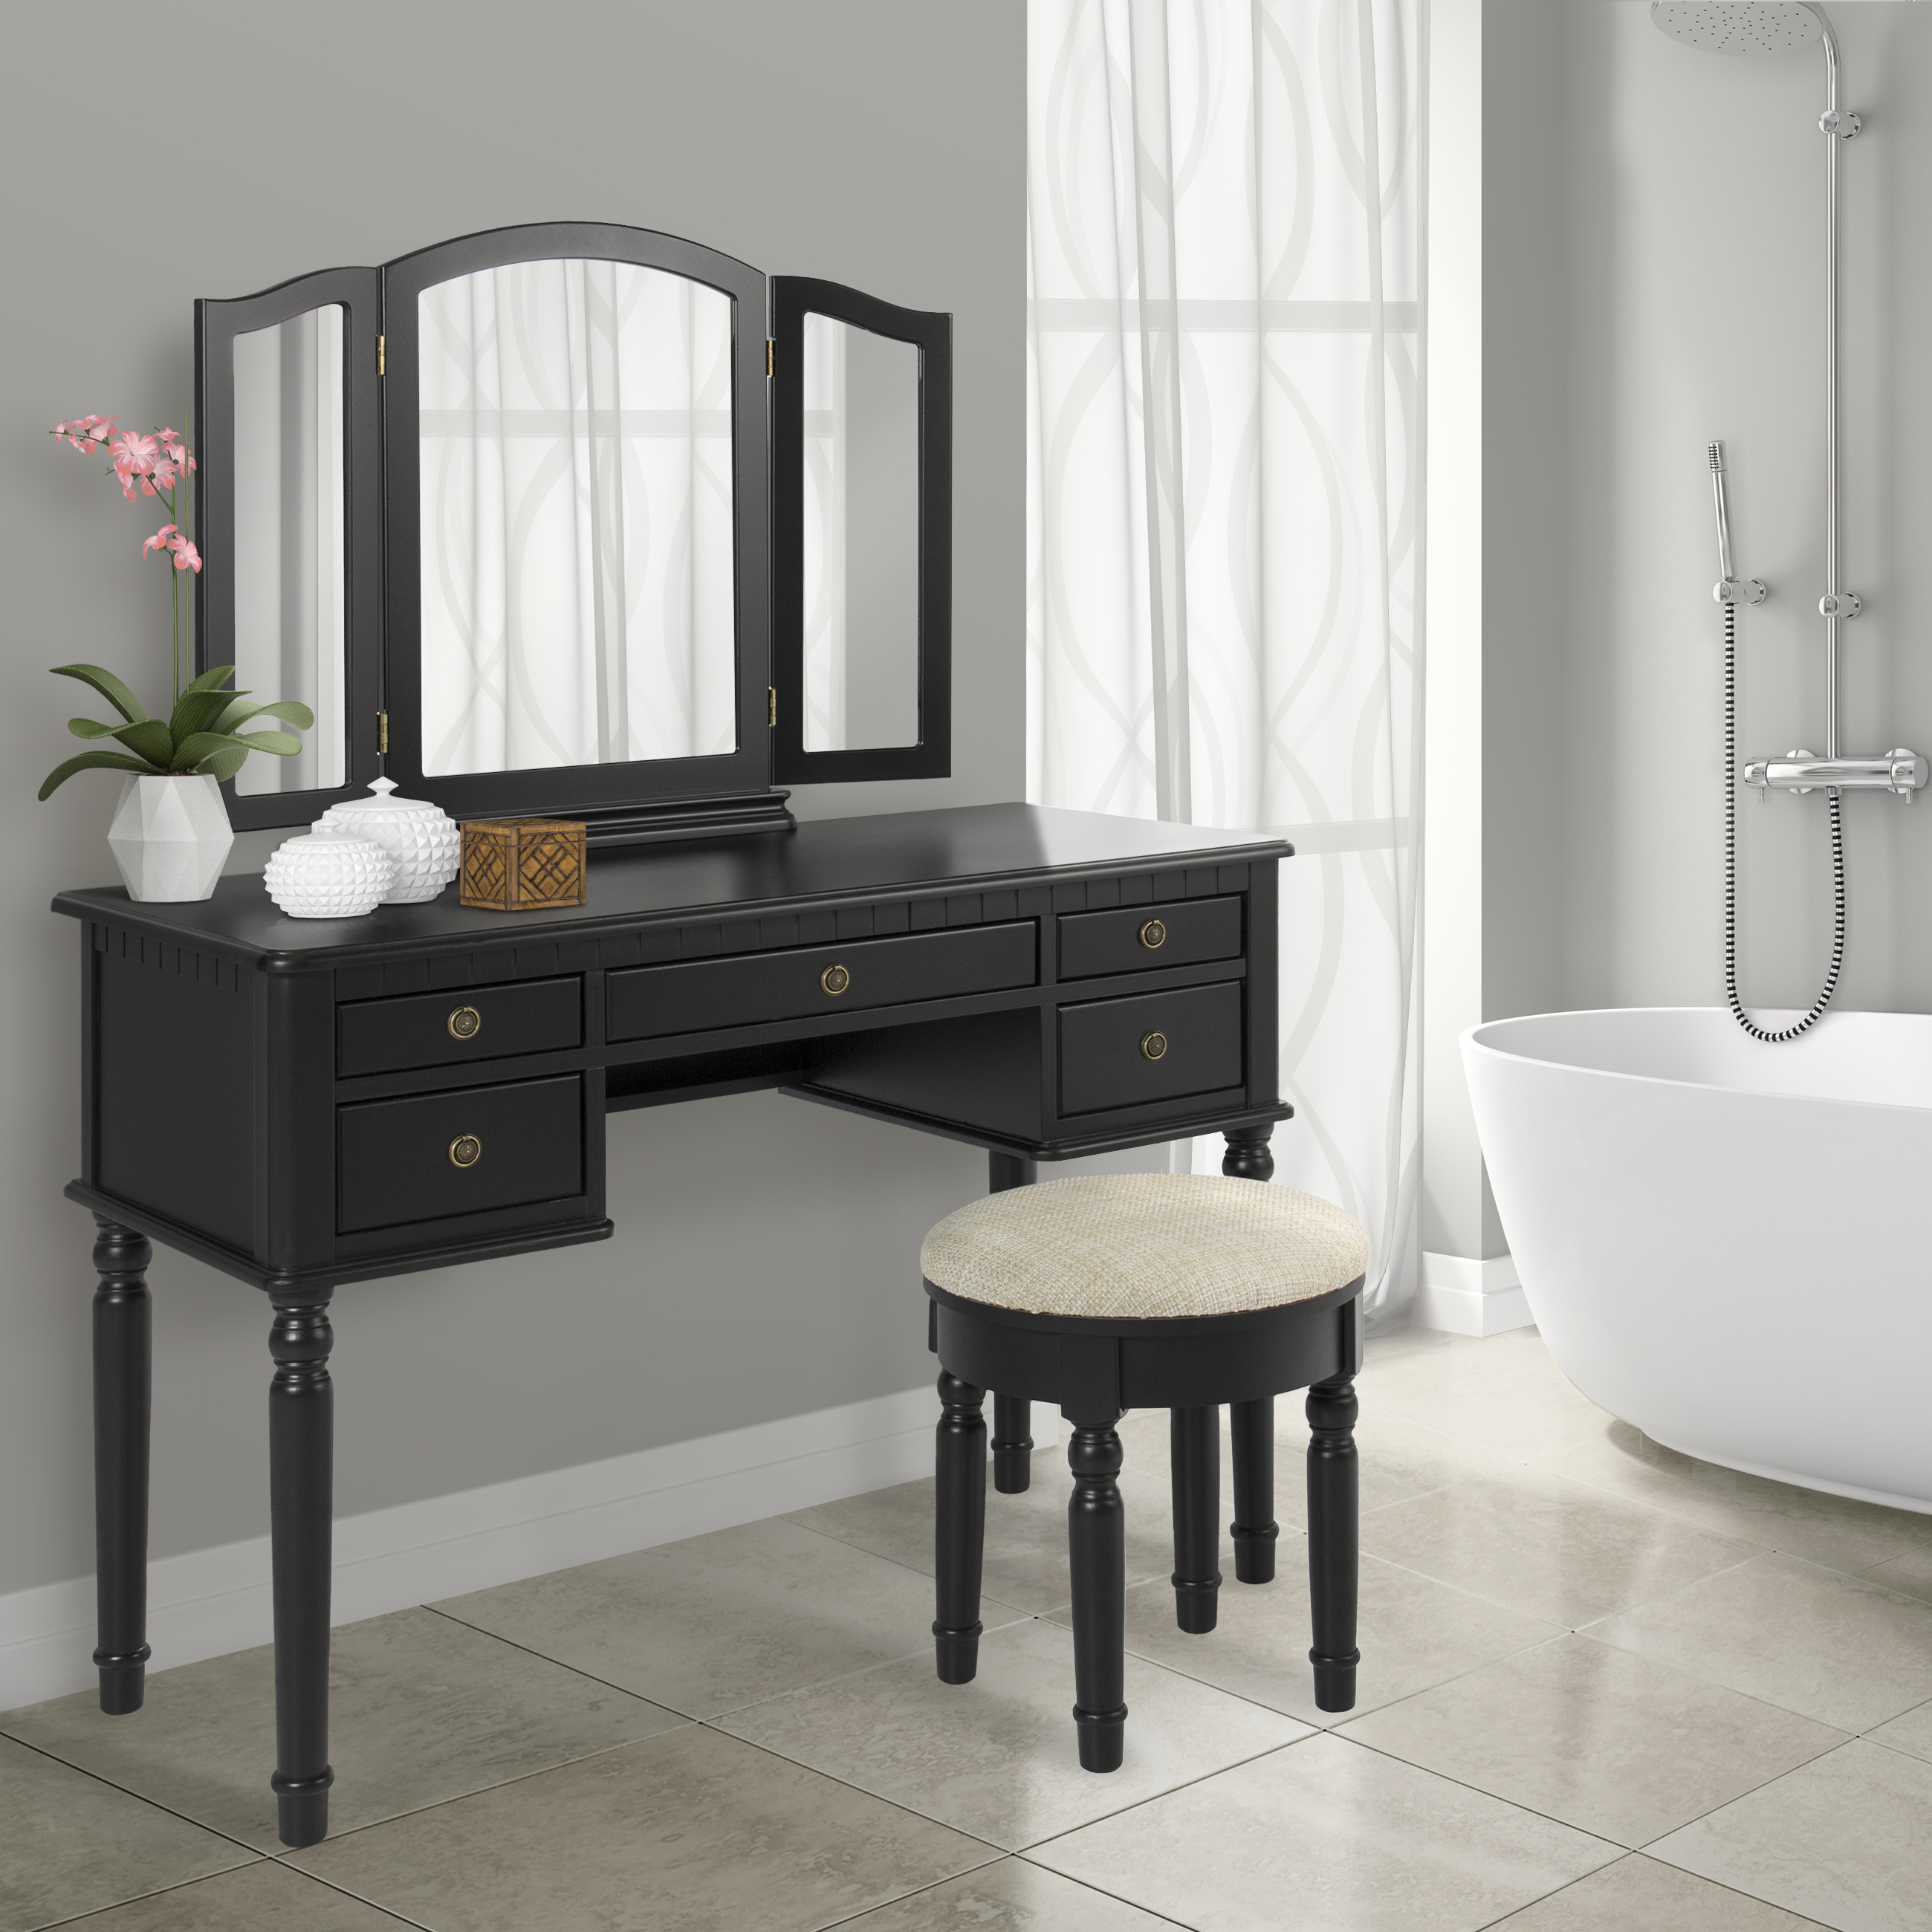 Best Choice Products Bathroom Tri Mirror Vanity Set Makeup Table and Bench